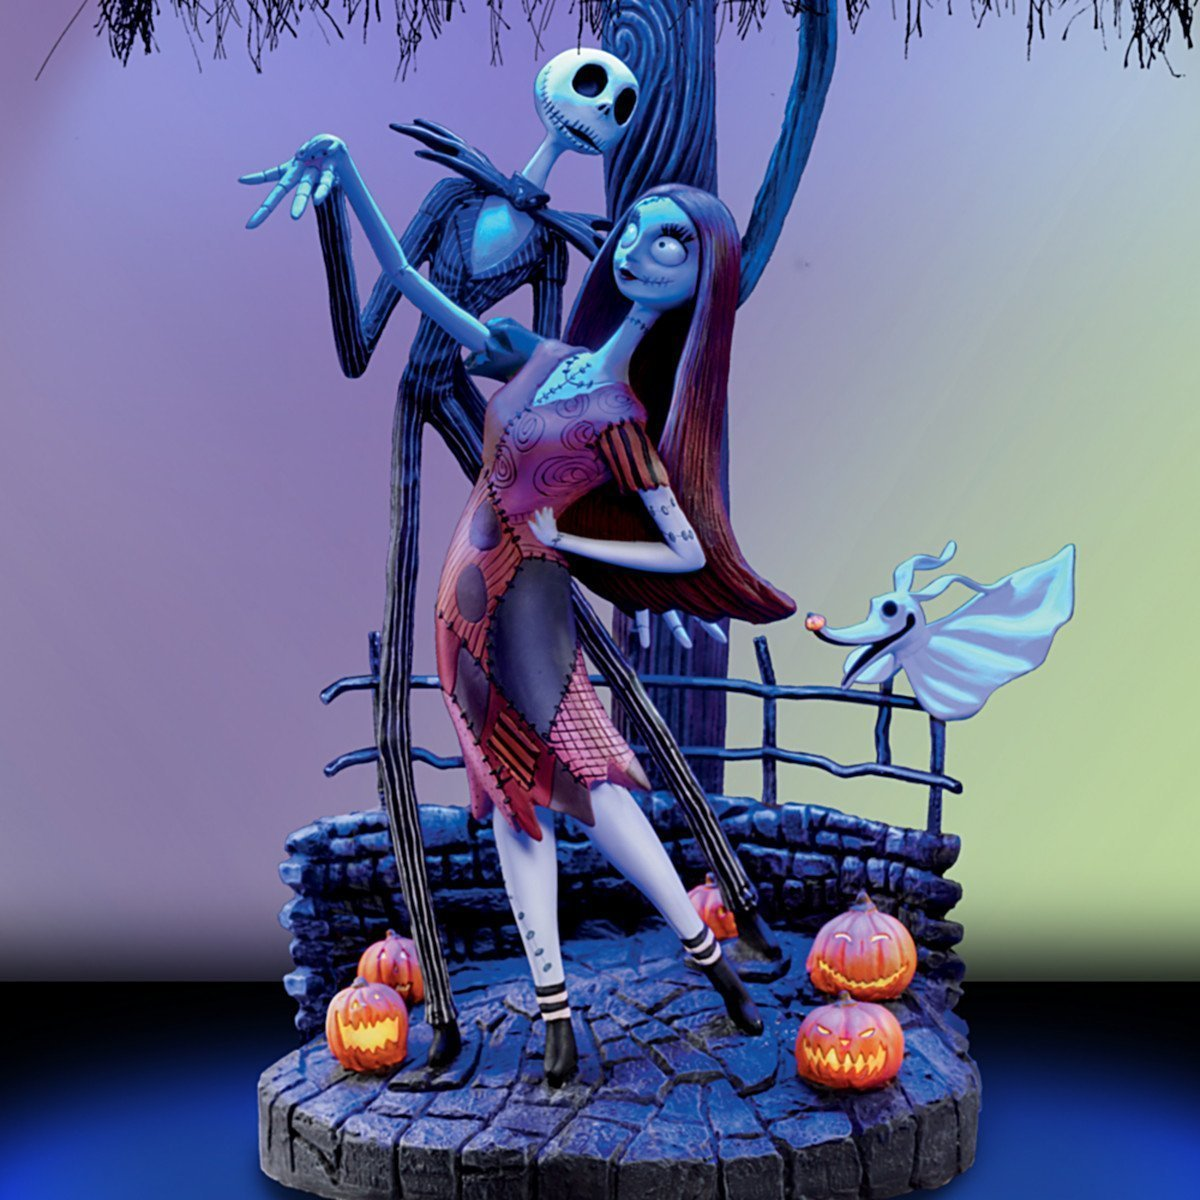 The Nightmare Before Christmas Moonlight Lamp accessories